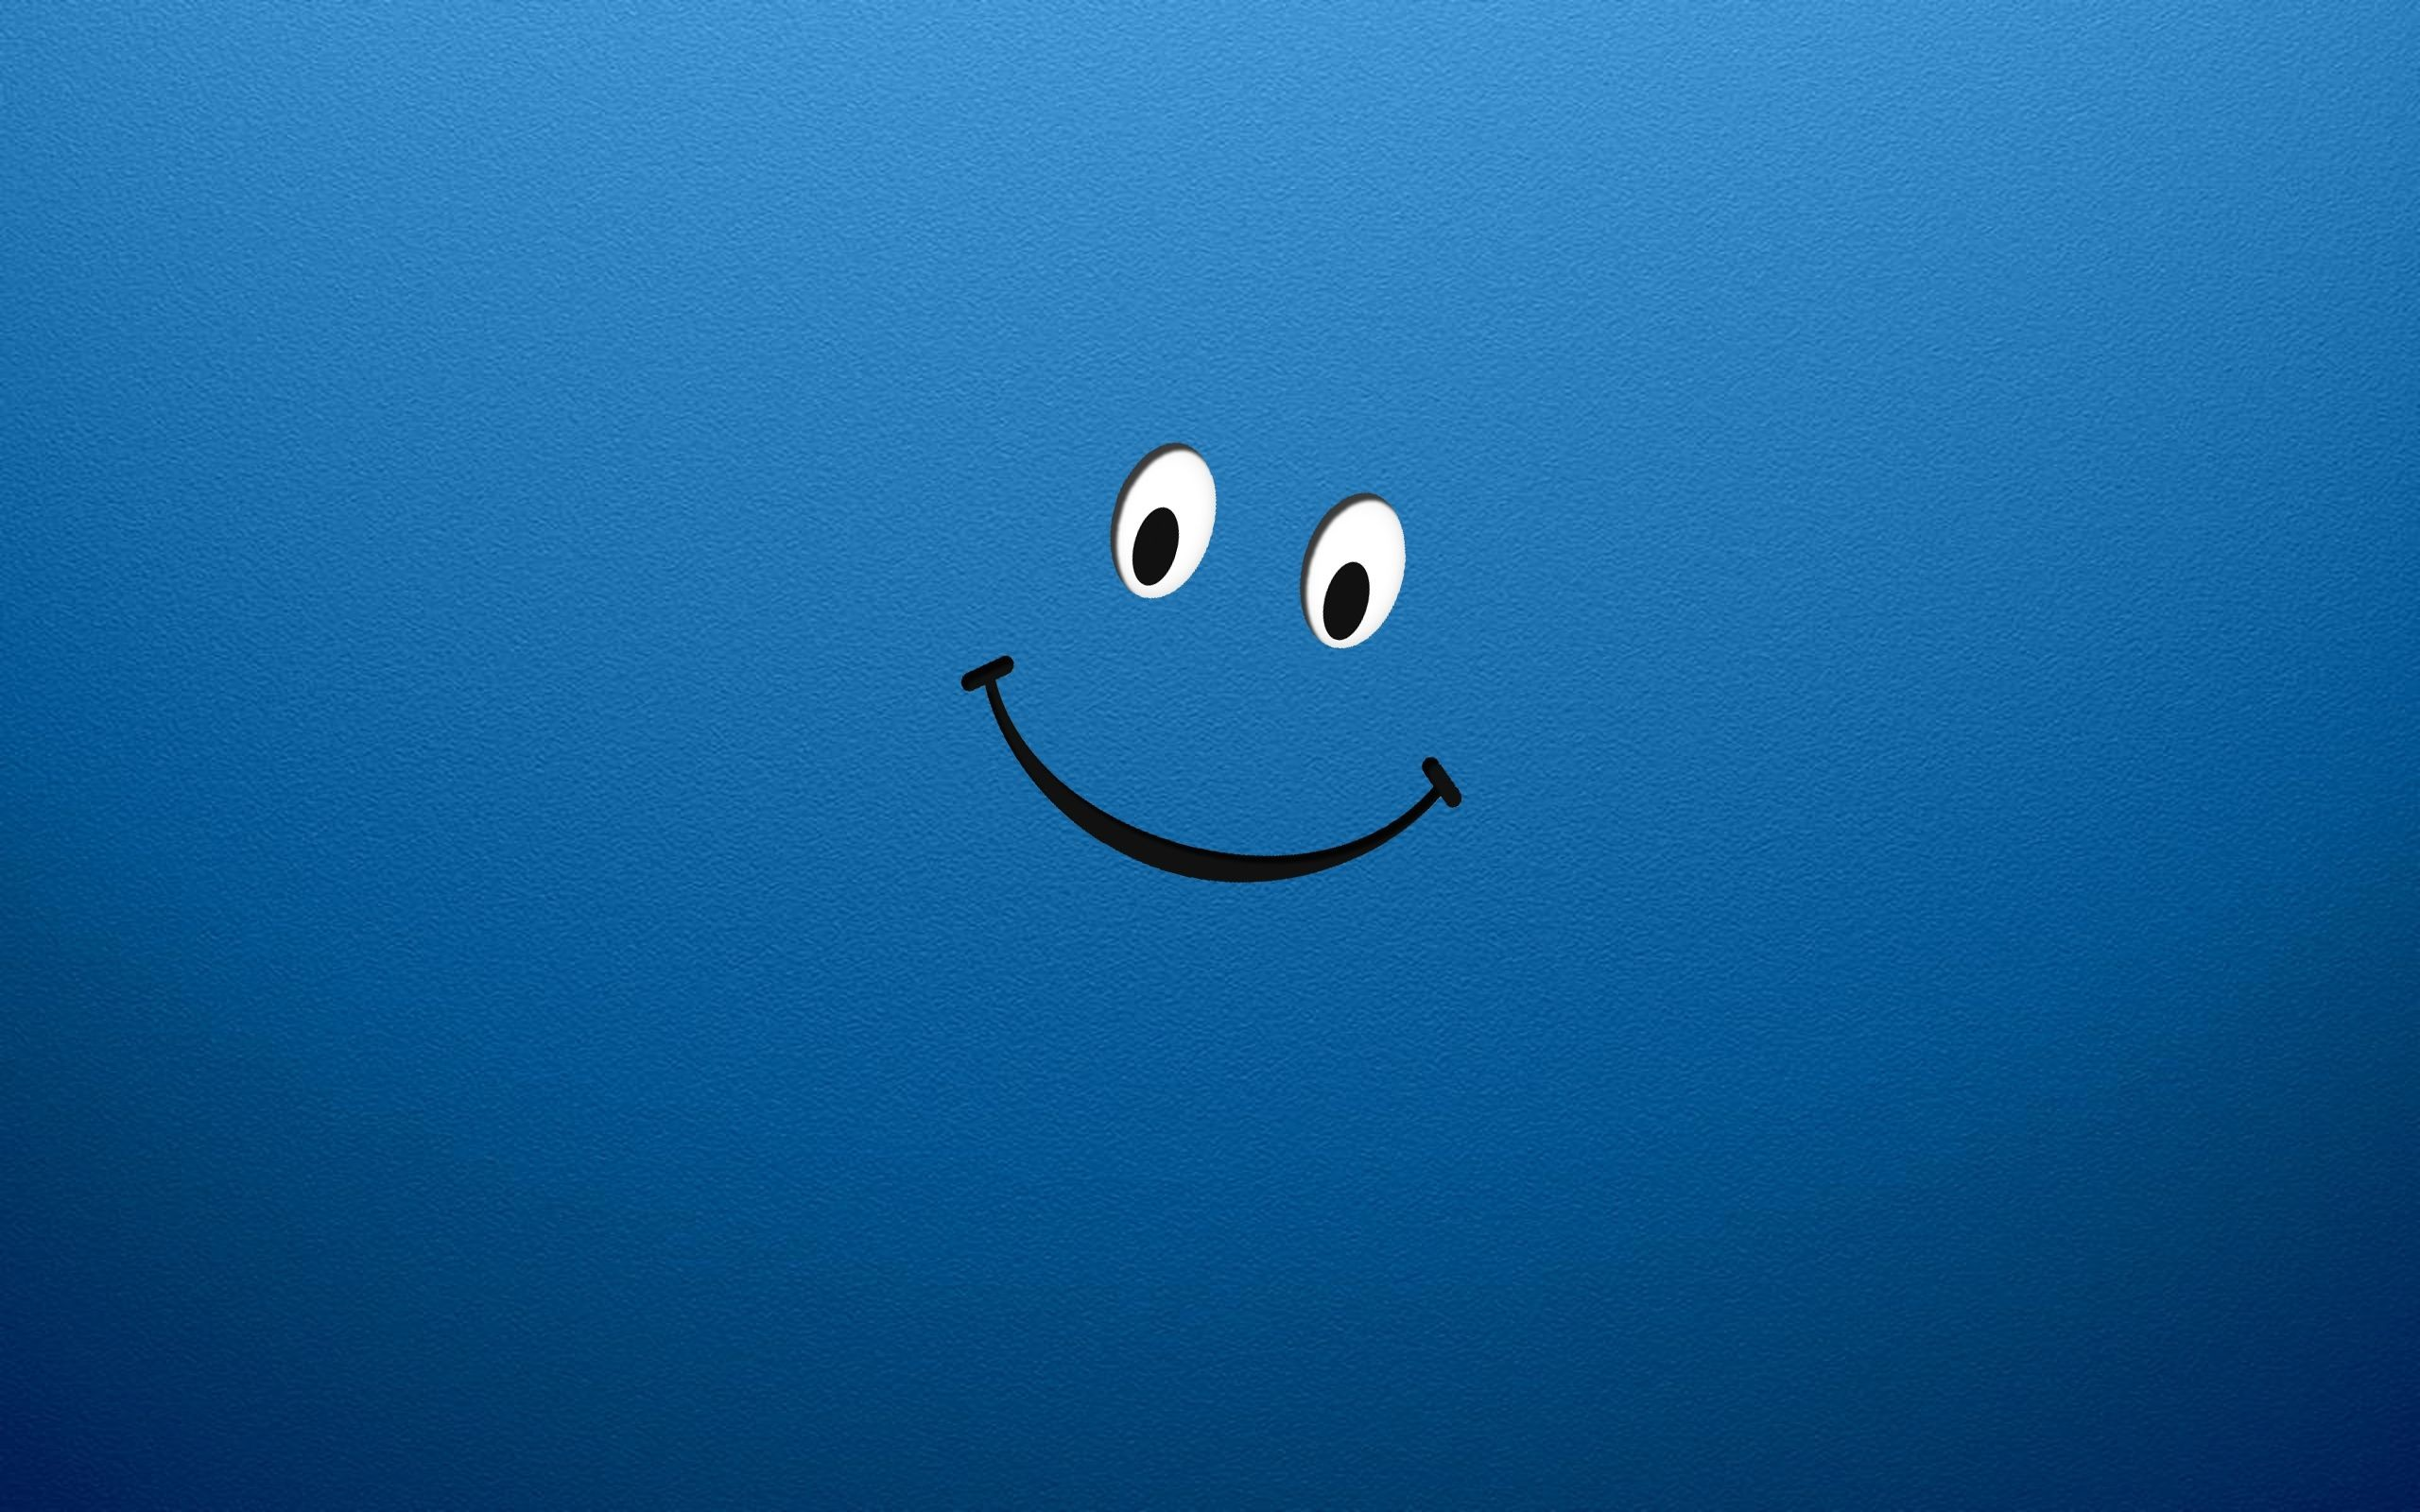 2560x1600 Wallpapers For > Smile Logo Hd Wallpapers